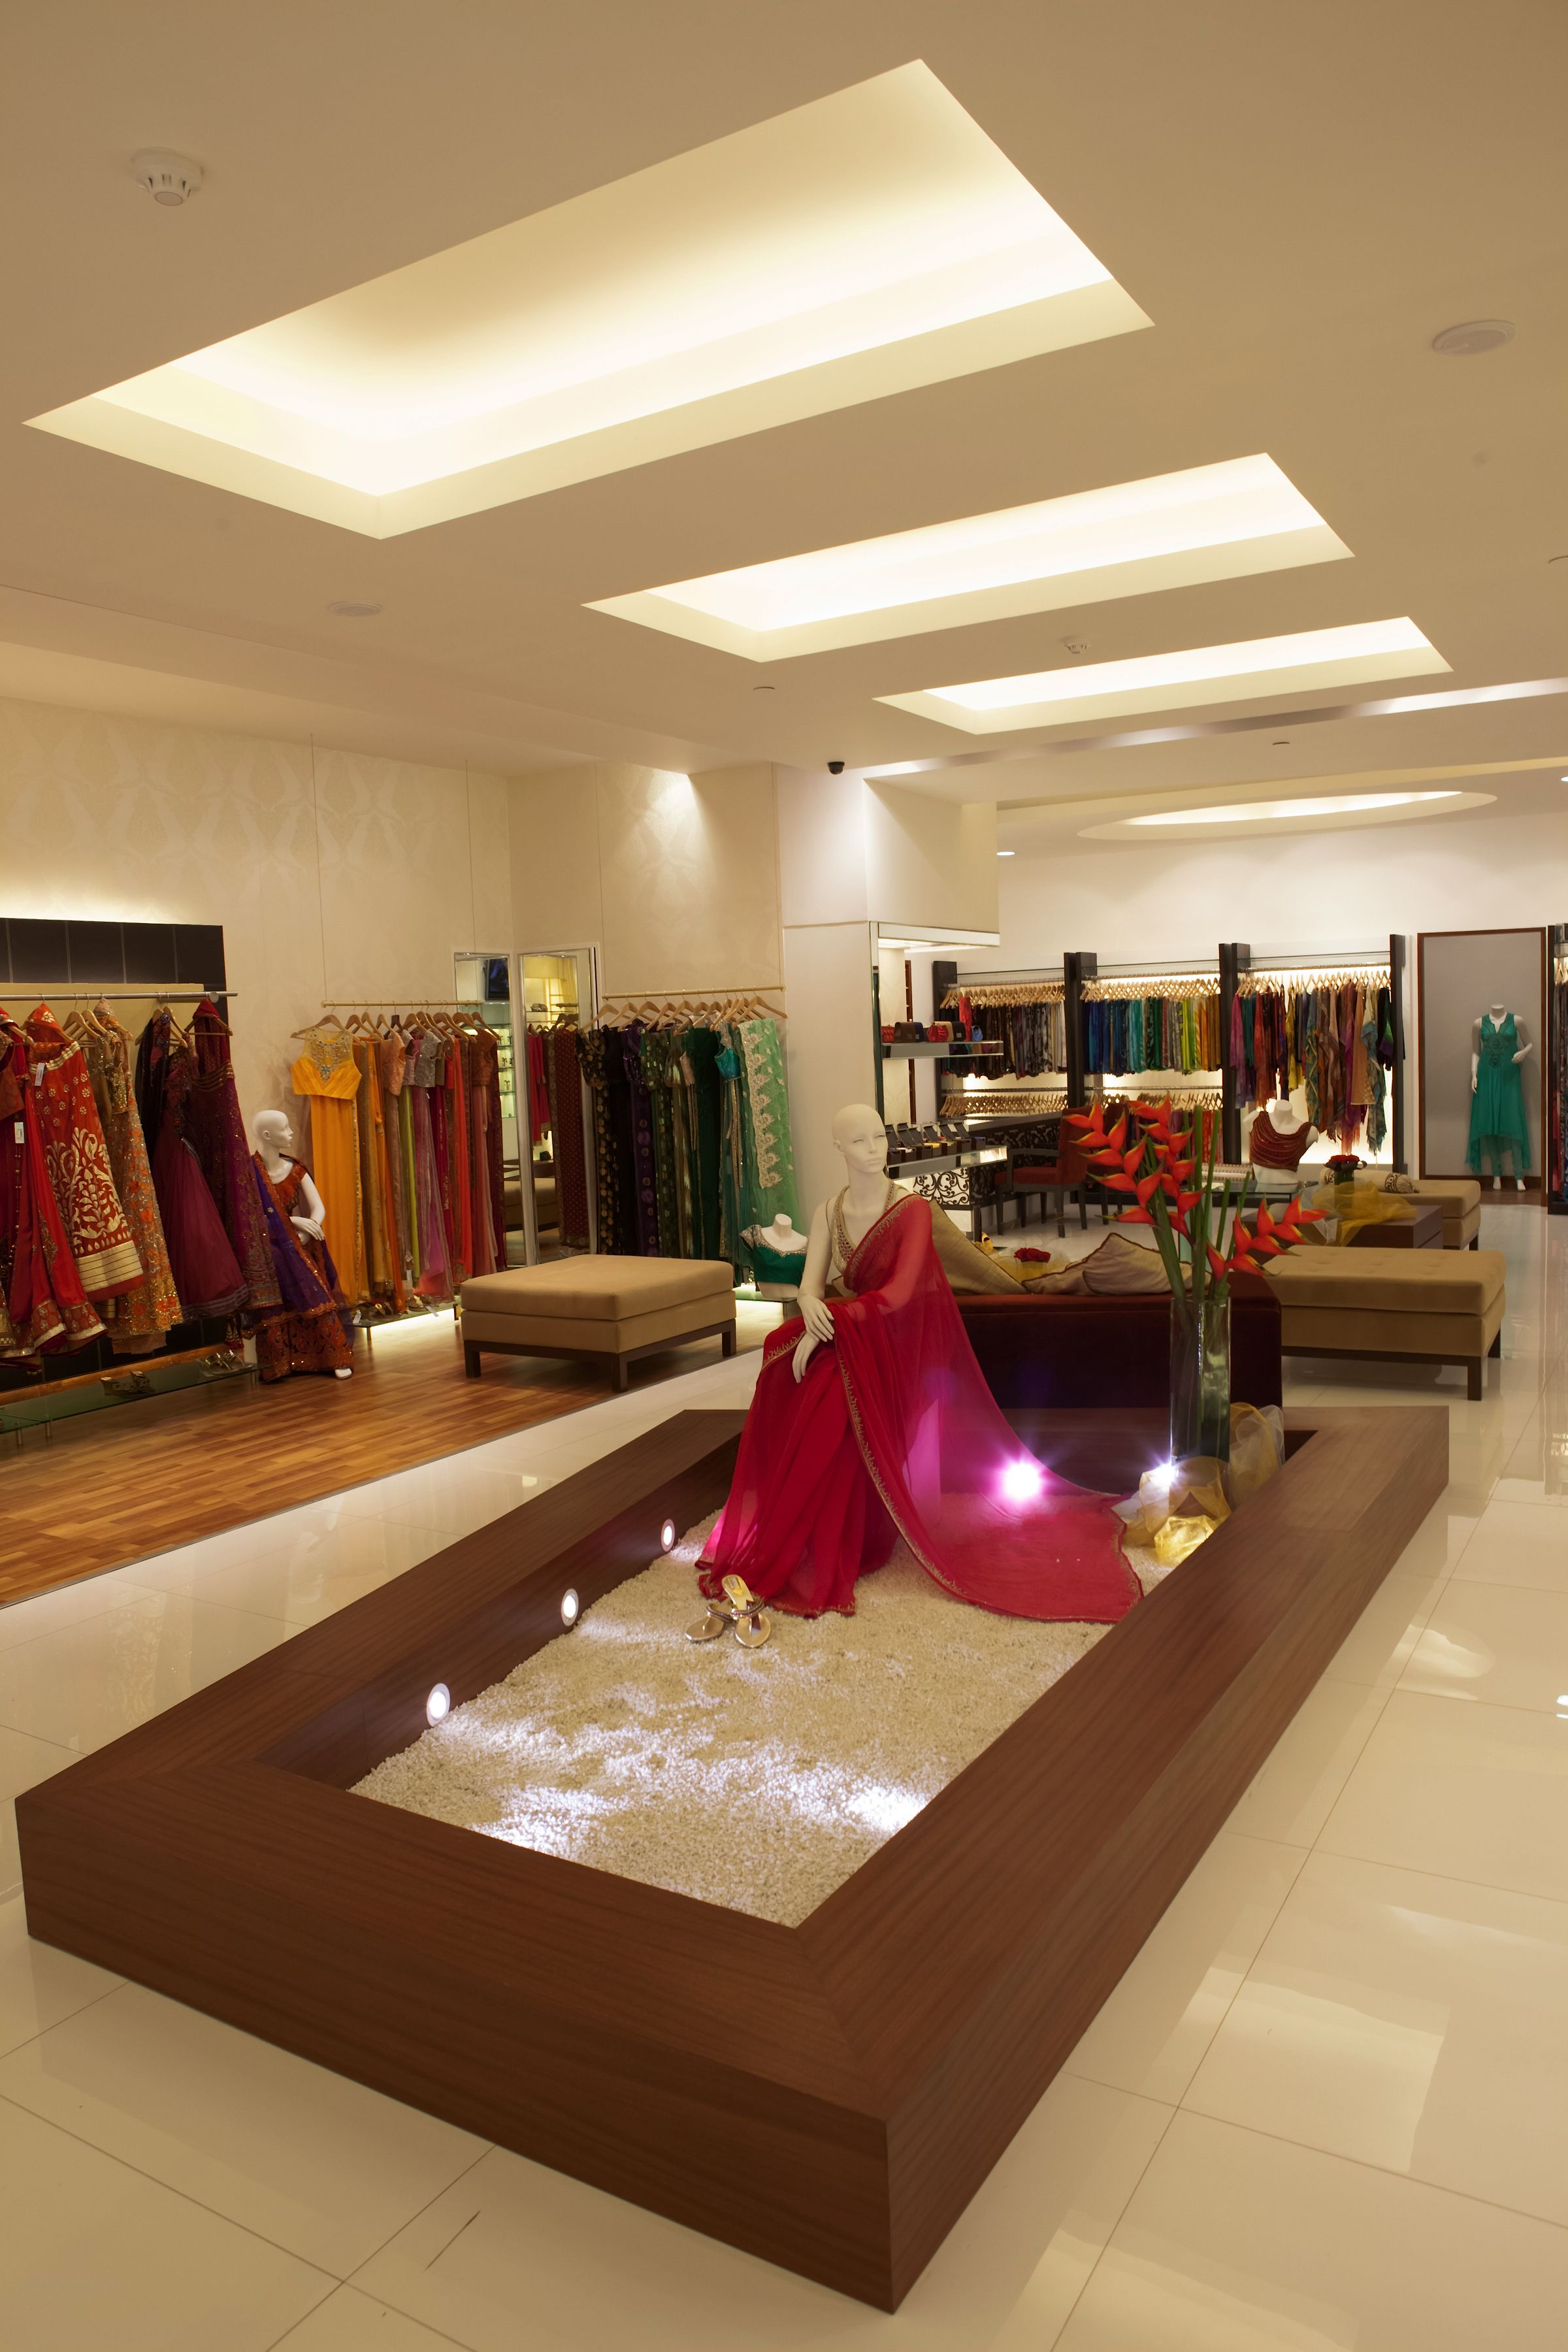 Indian designer bridal wear clothing boutique interior bridal boutique interior boutique interior design